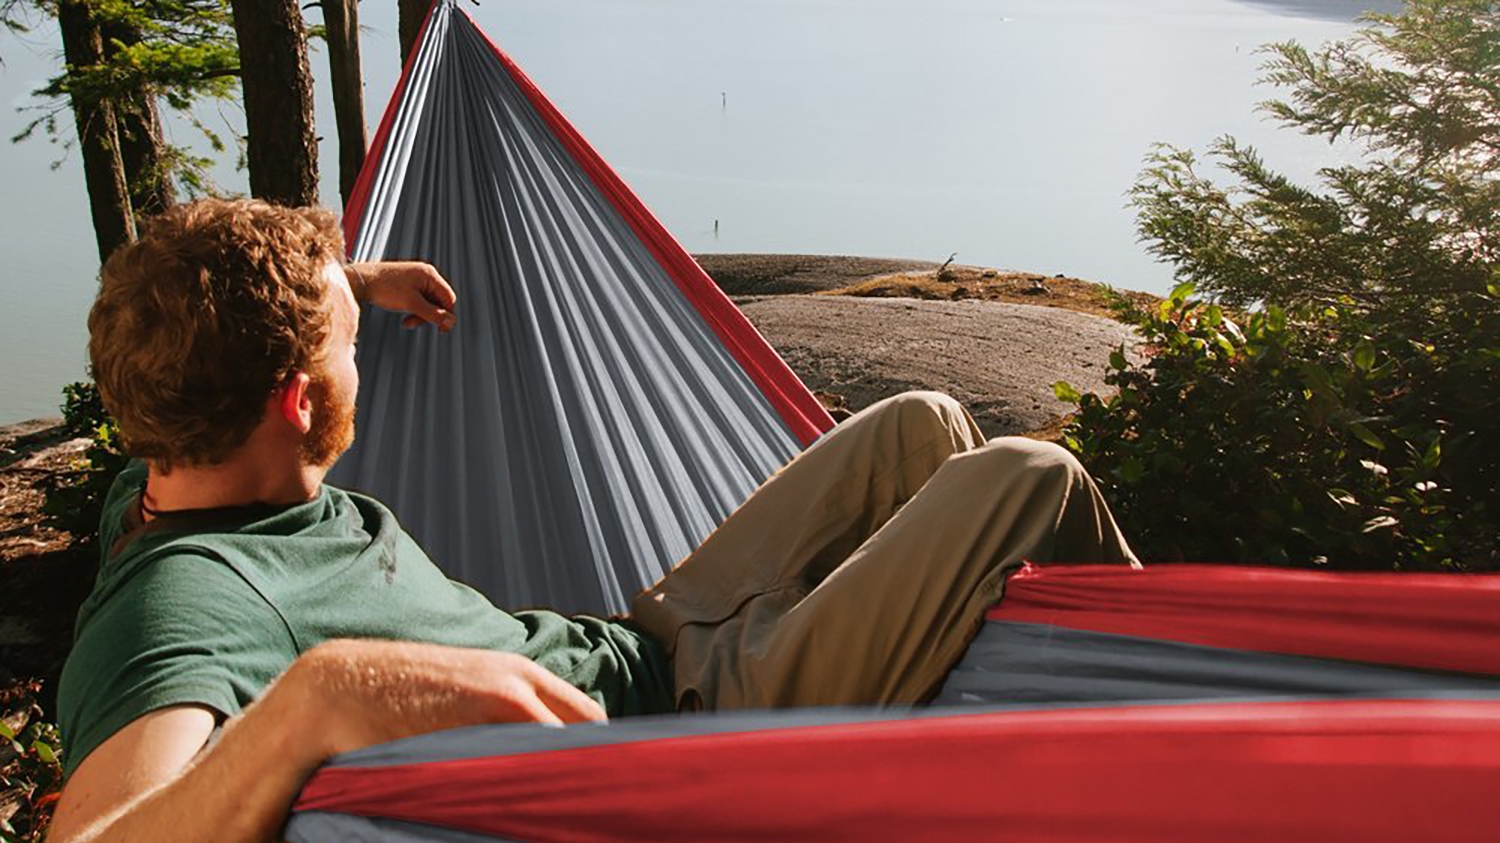 Amazon Gold Box: Gear up for warmer weather with this highly-rated double hammock for $48 (Reg. $60)